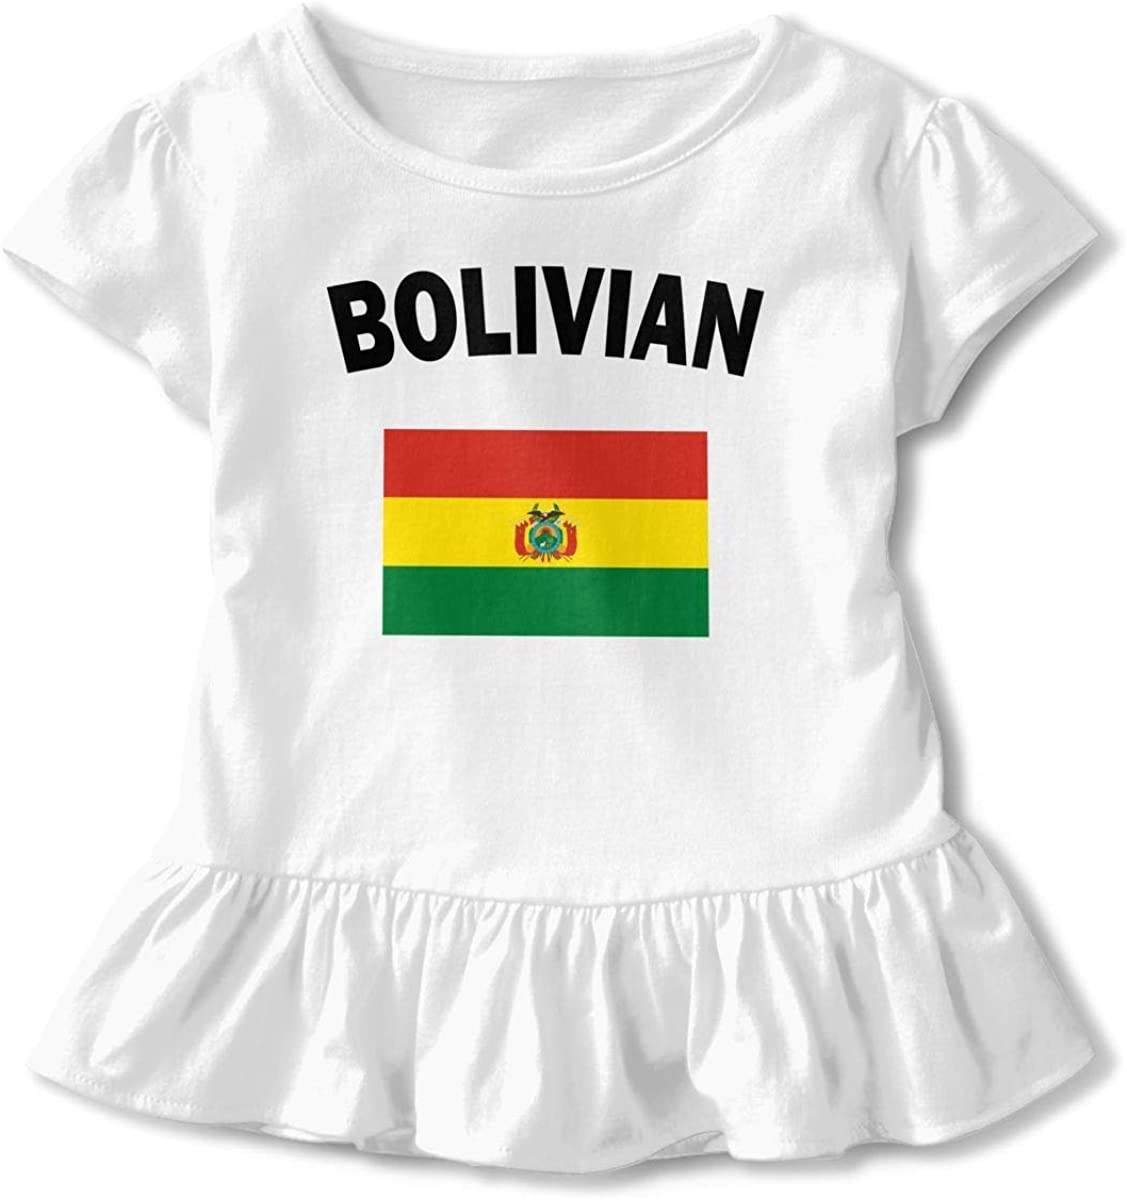 HelloWorlduk Toddler Baby Girl Bolivian Flag Funny Short Sleeve Cotton T Shirts Basic Tops Tee Clothes